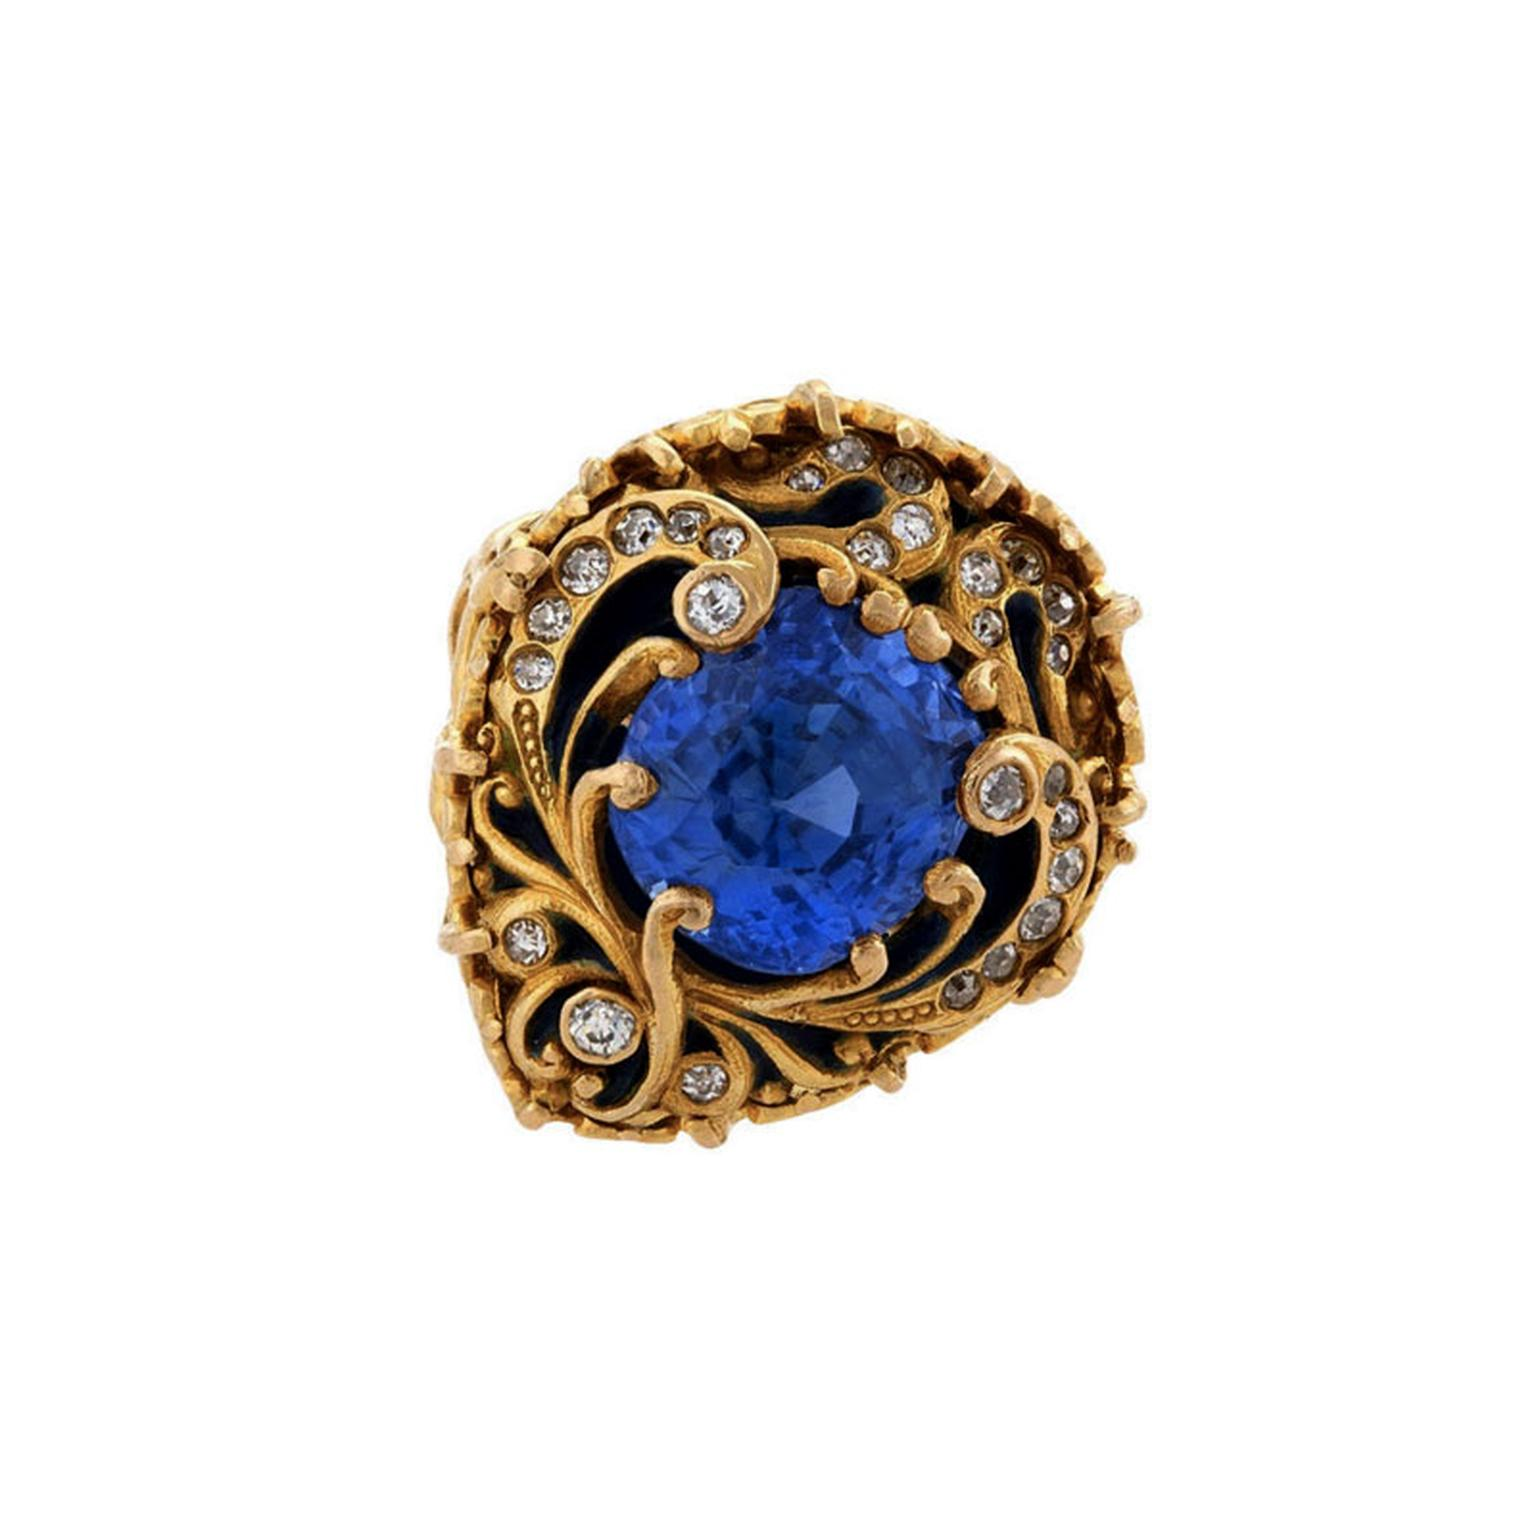 Marcus & Co blue sapphire gold ring from 1stdibs